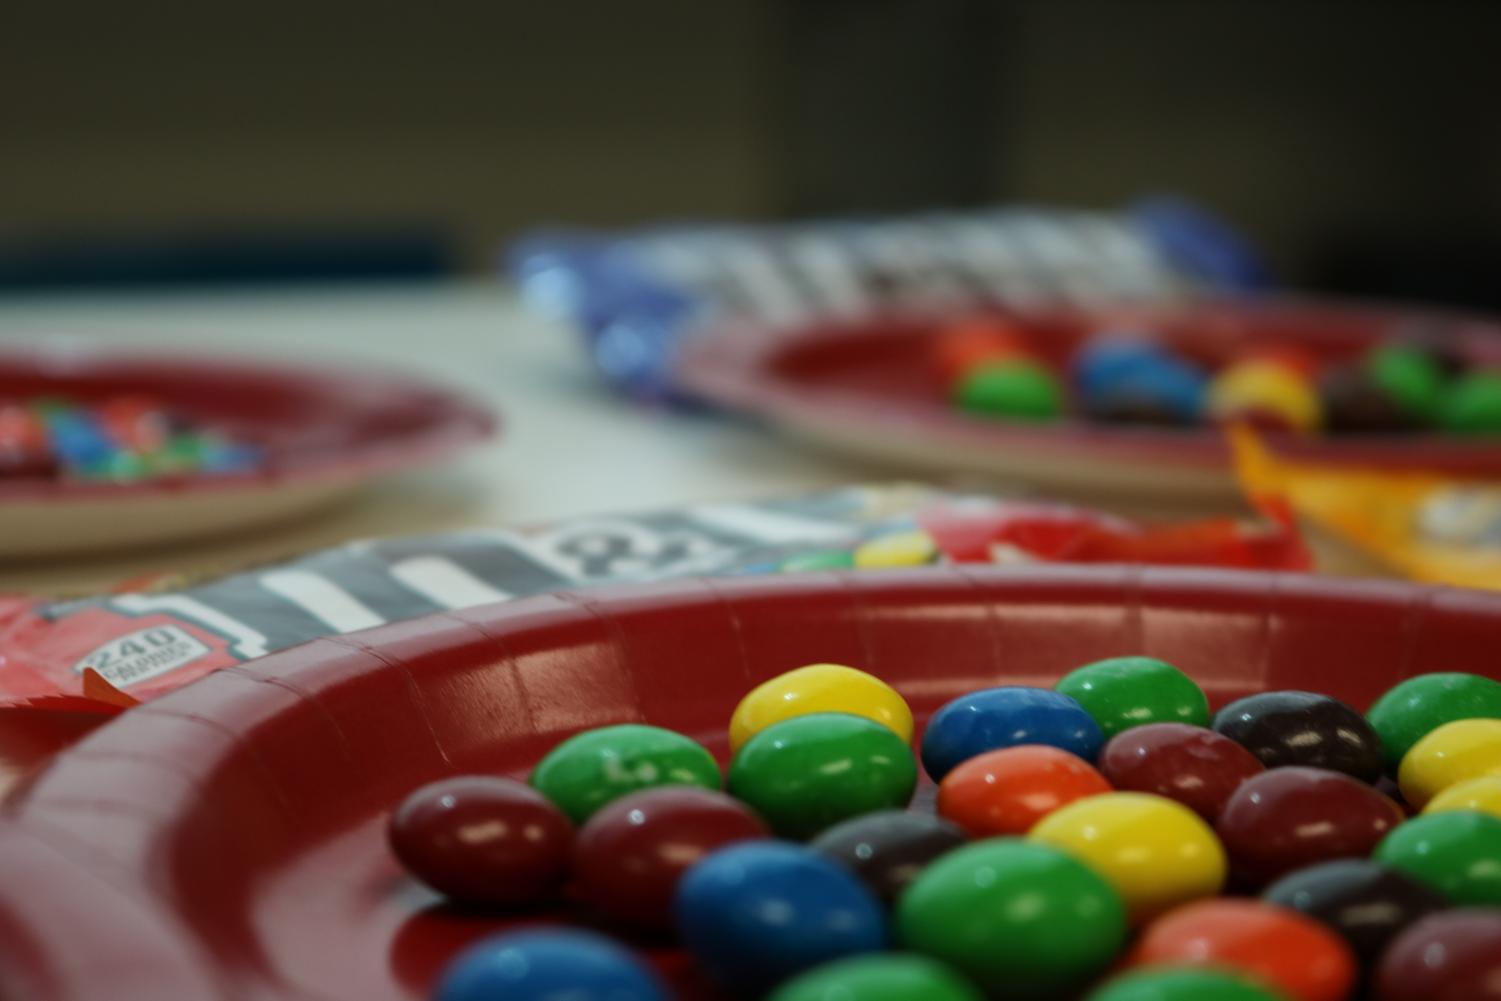 The journalism class worked on using data in their articles by taste-testing M&M flavors, ranking, and reporting their findings.